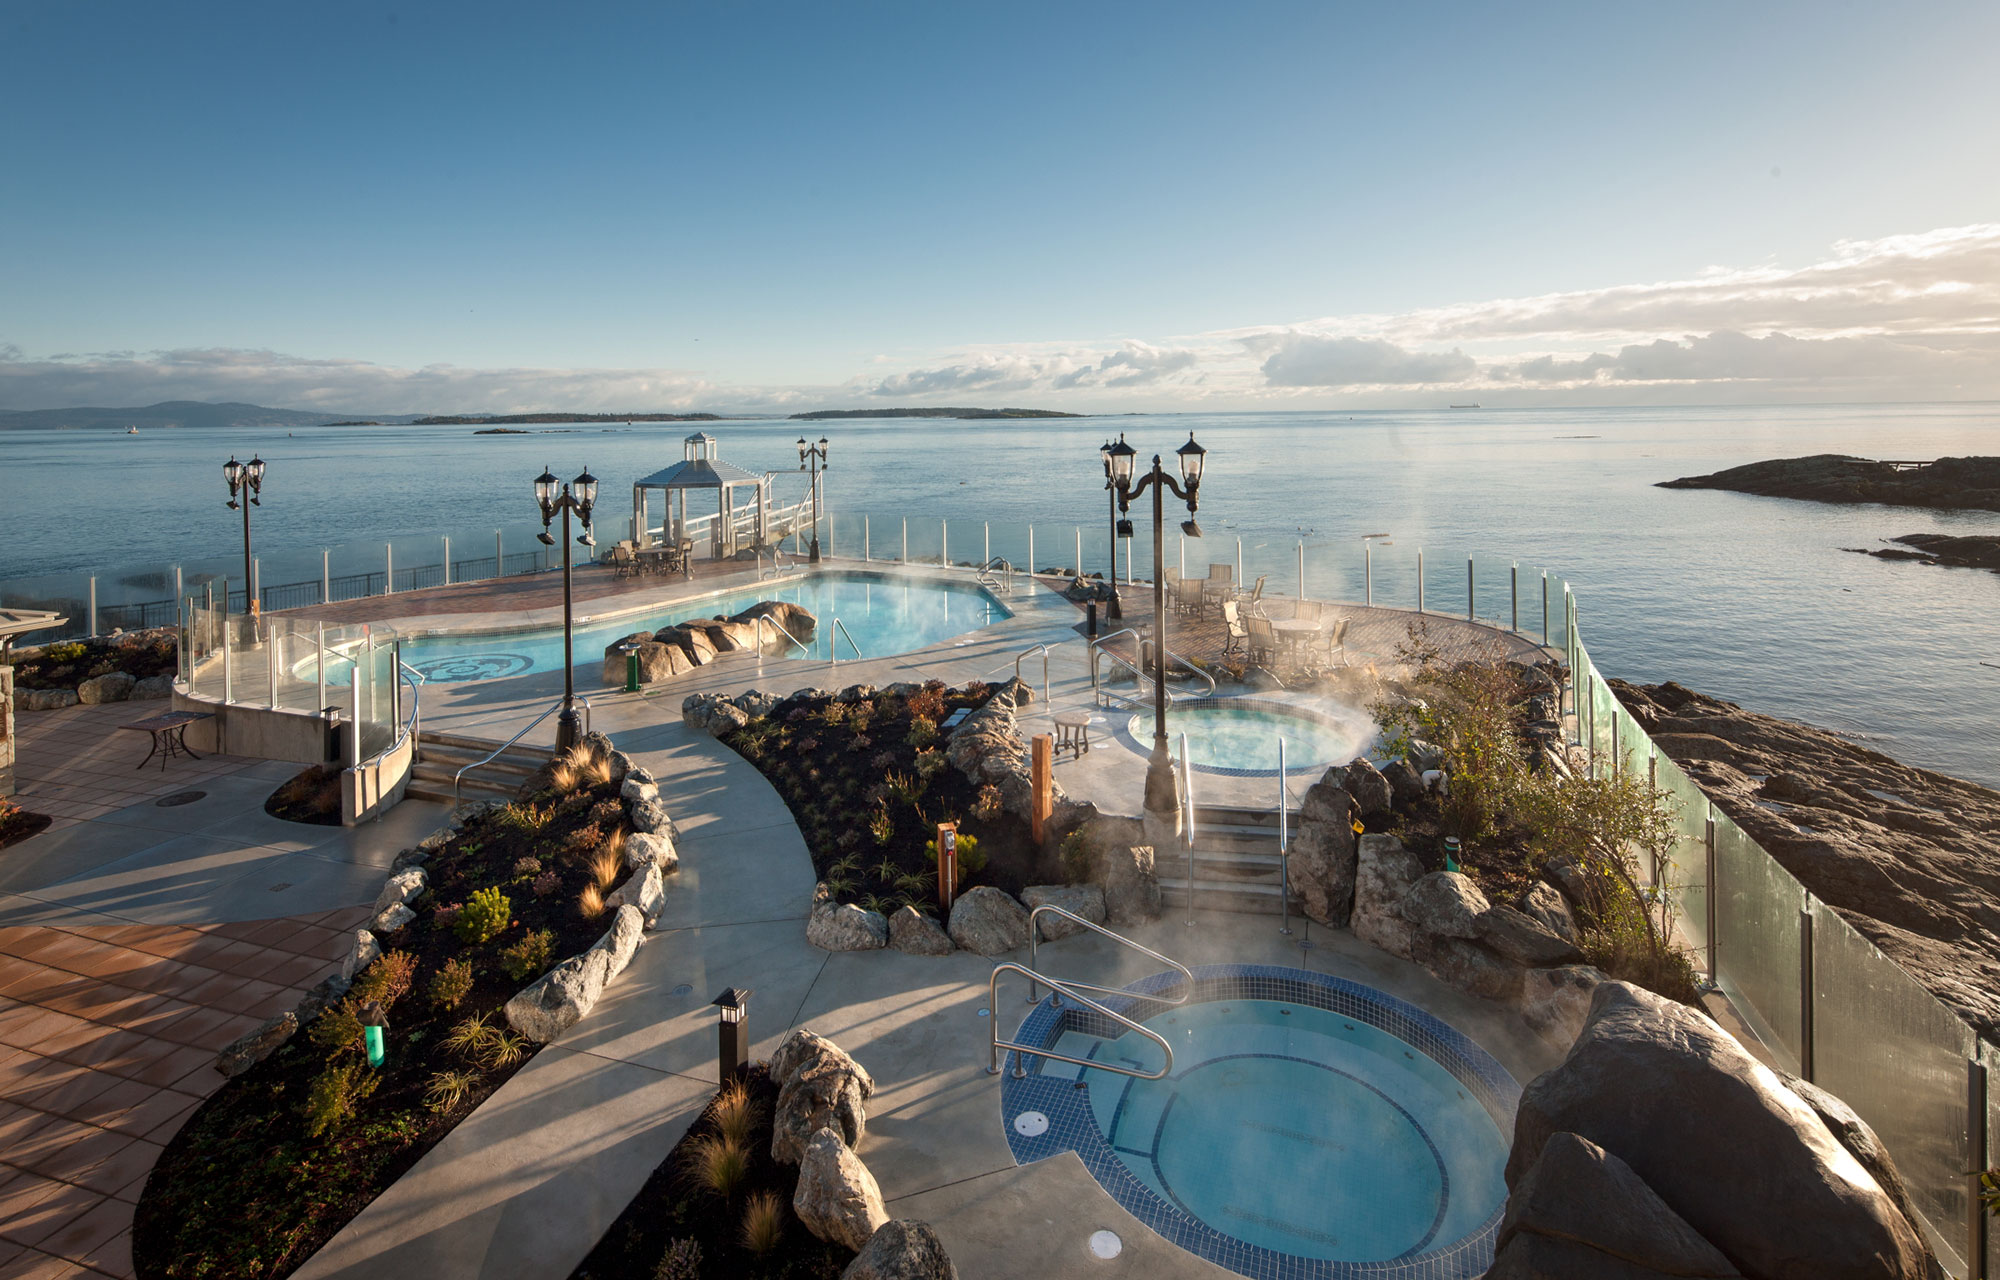 The Boathouse Spa at Oak Bay Beach Hotel & Resort in Victoria